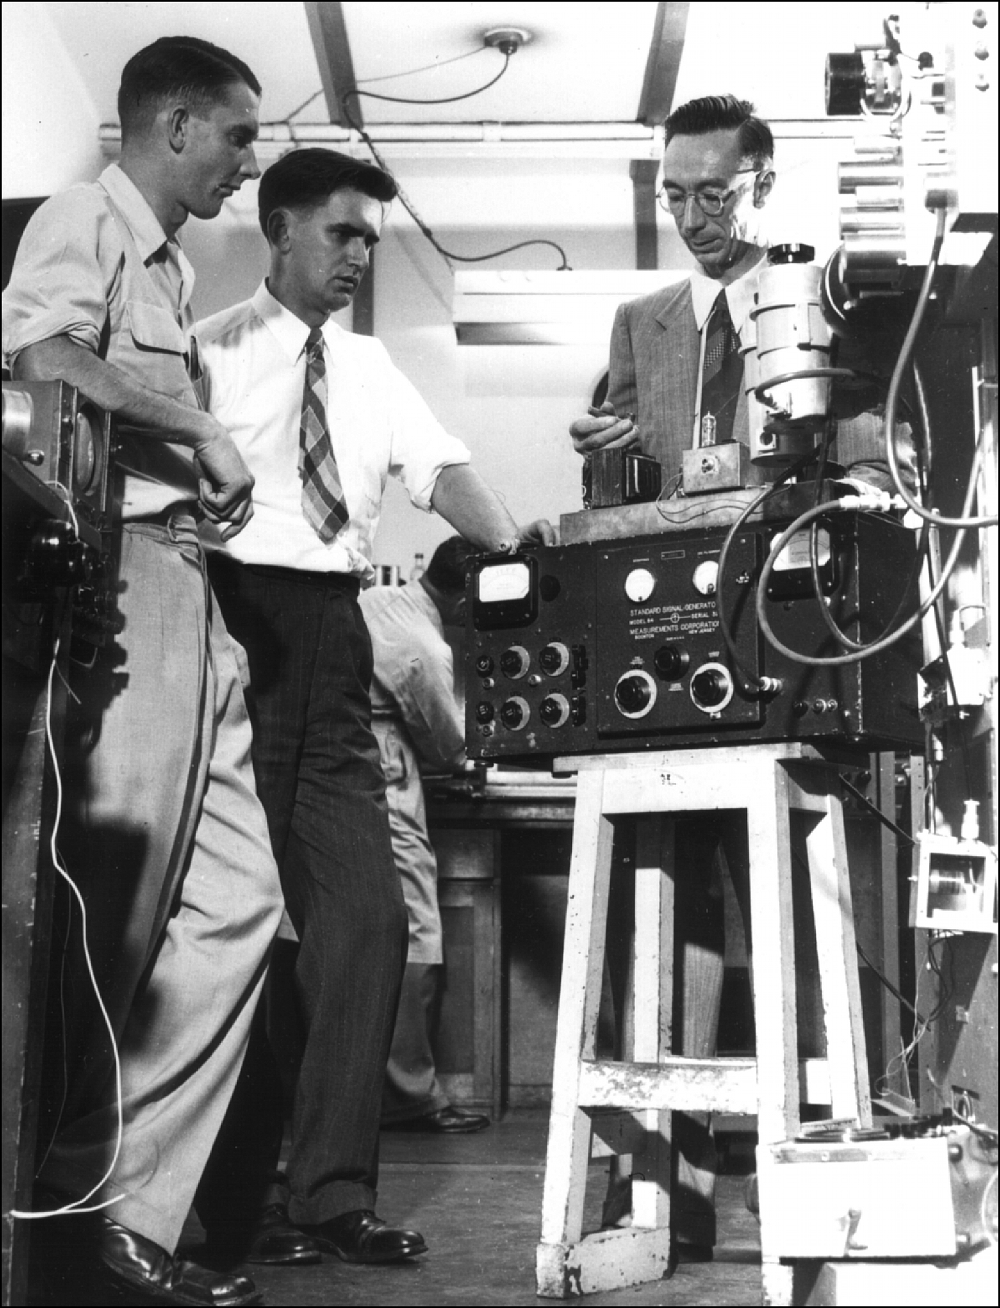 Three men standing near radio equipment in a laboratory in the late 1940s.